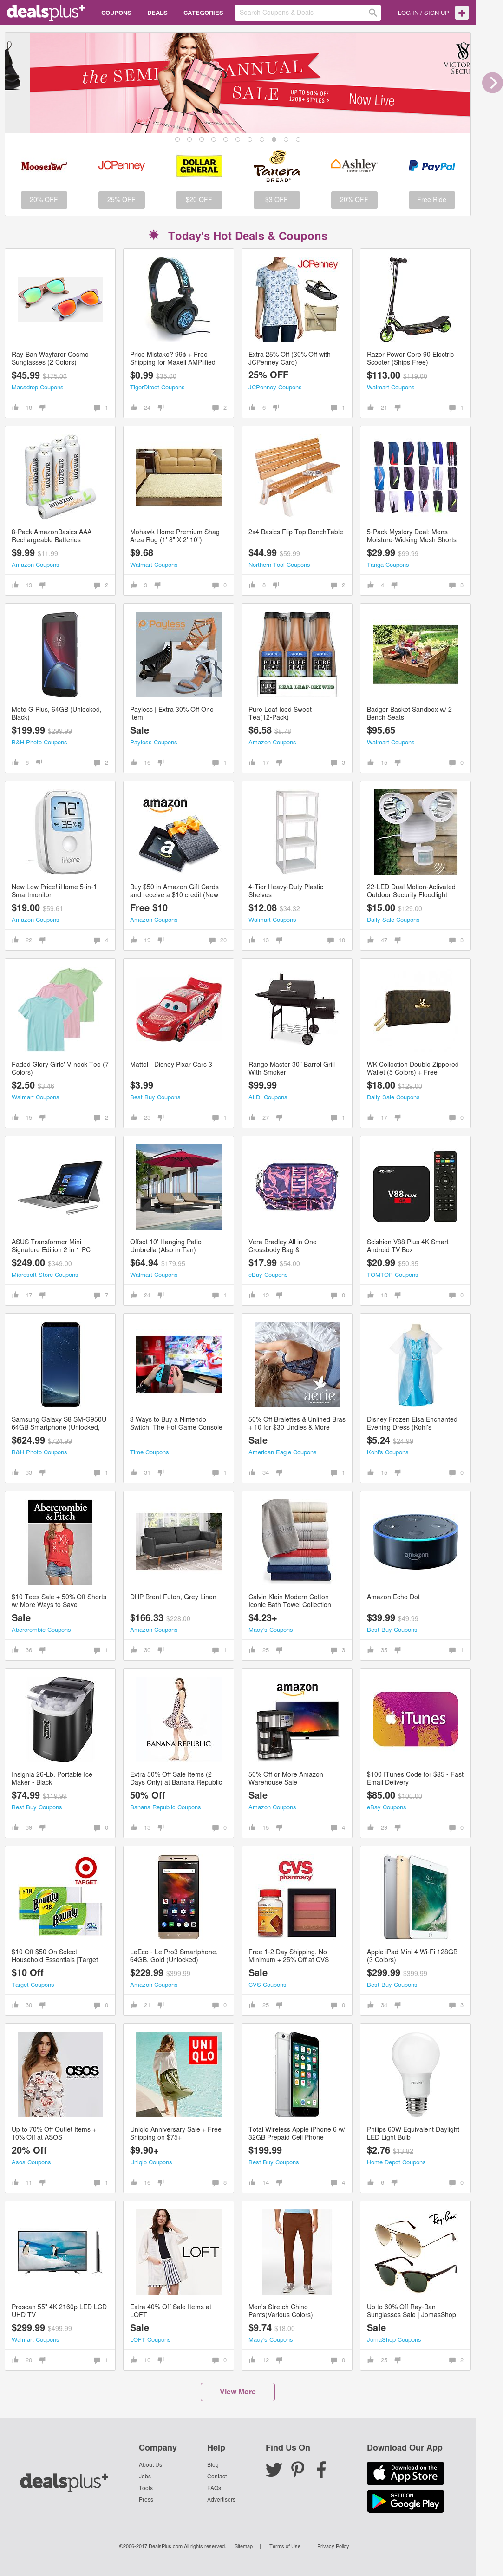 dealsplus coupon codes promos deals discounts and printable couponss website screenshot on